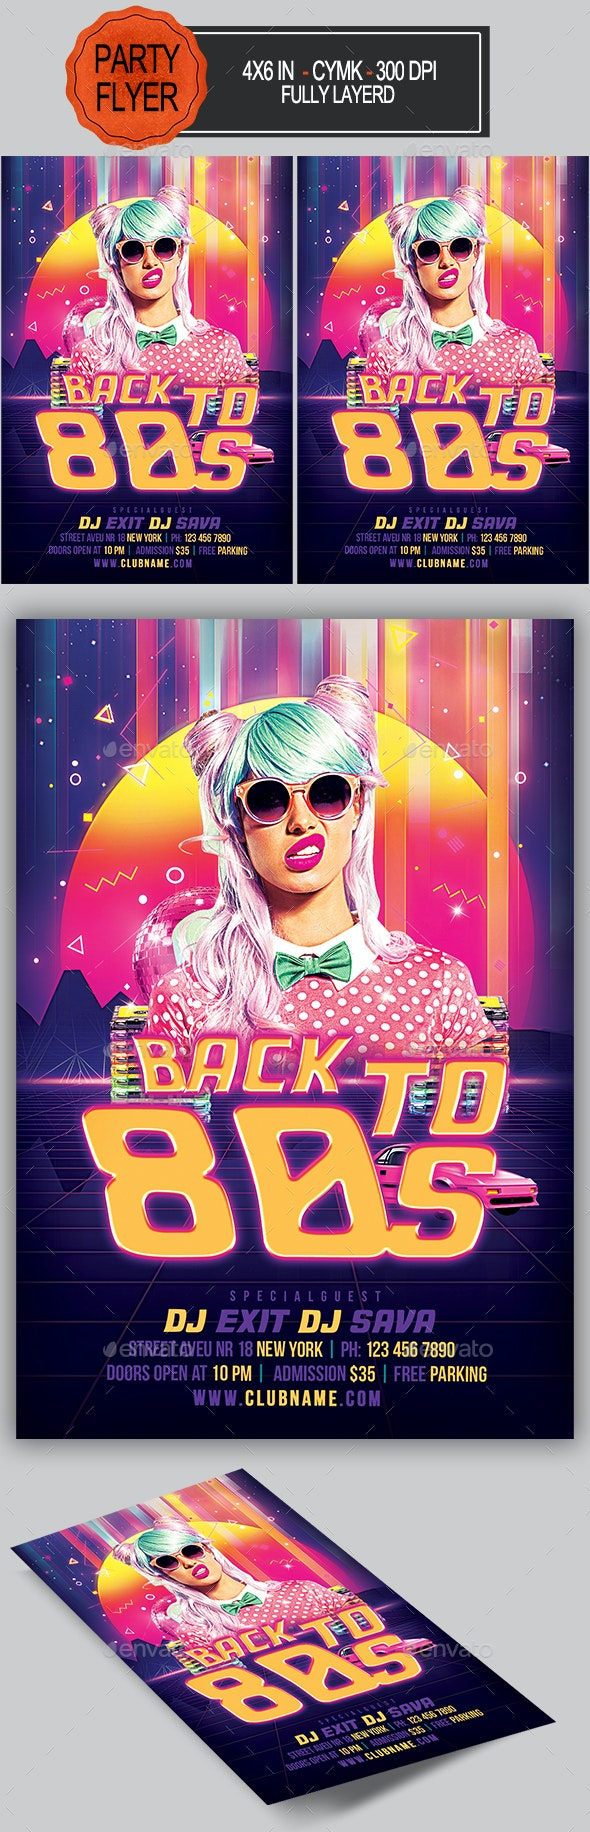 Back To 80s Party Flyer - Clubs & Parties Events